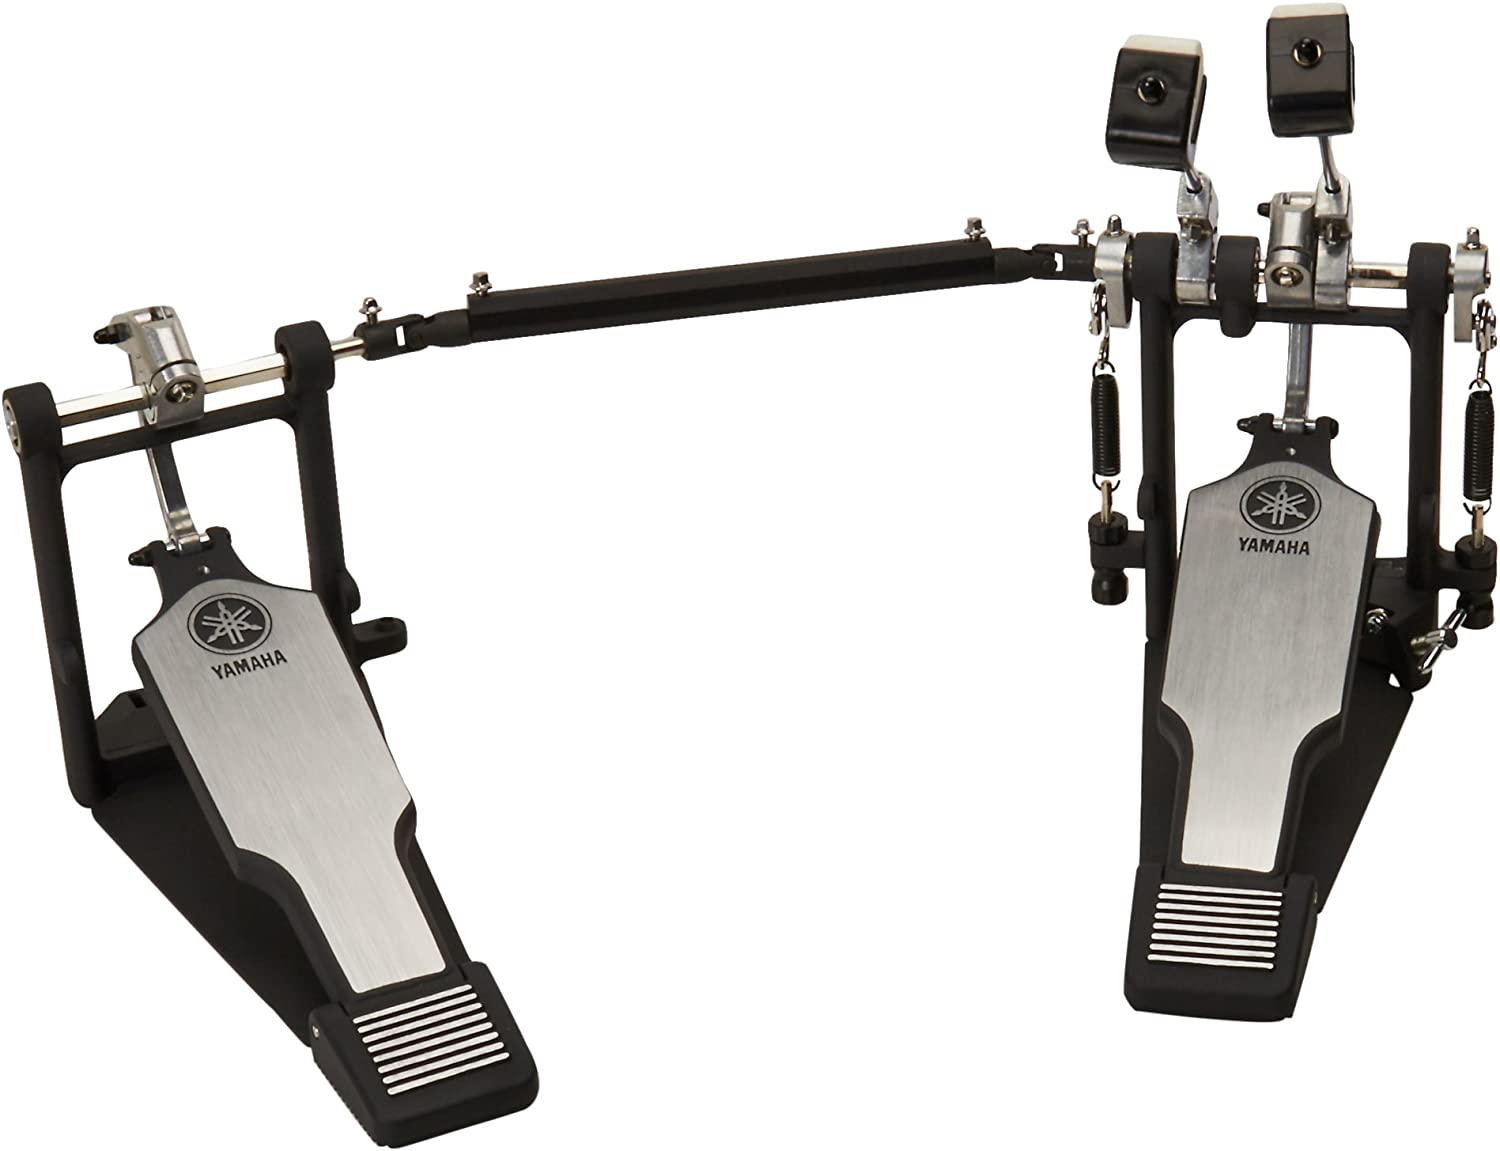 Yamaha Dfp-9500D Double Foot Pedal - Direct Drive